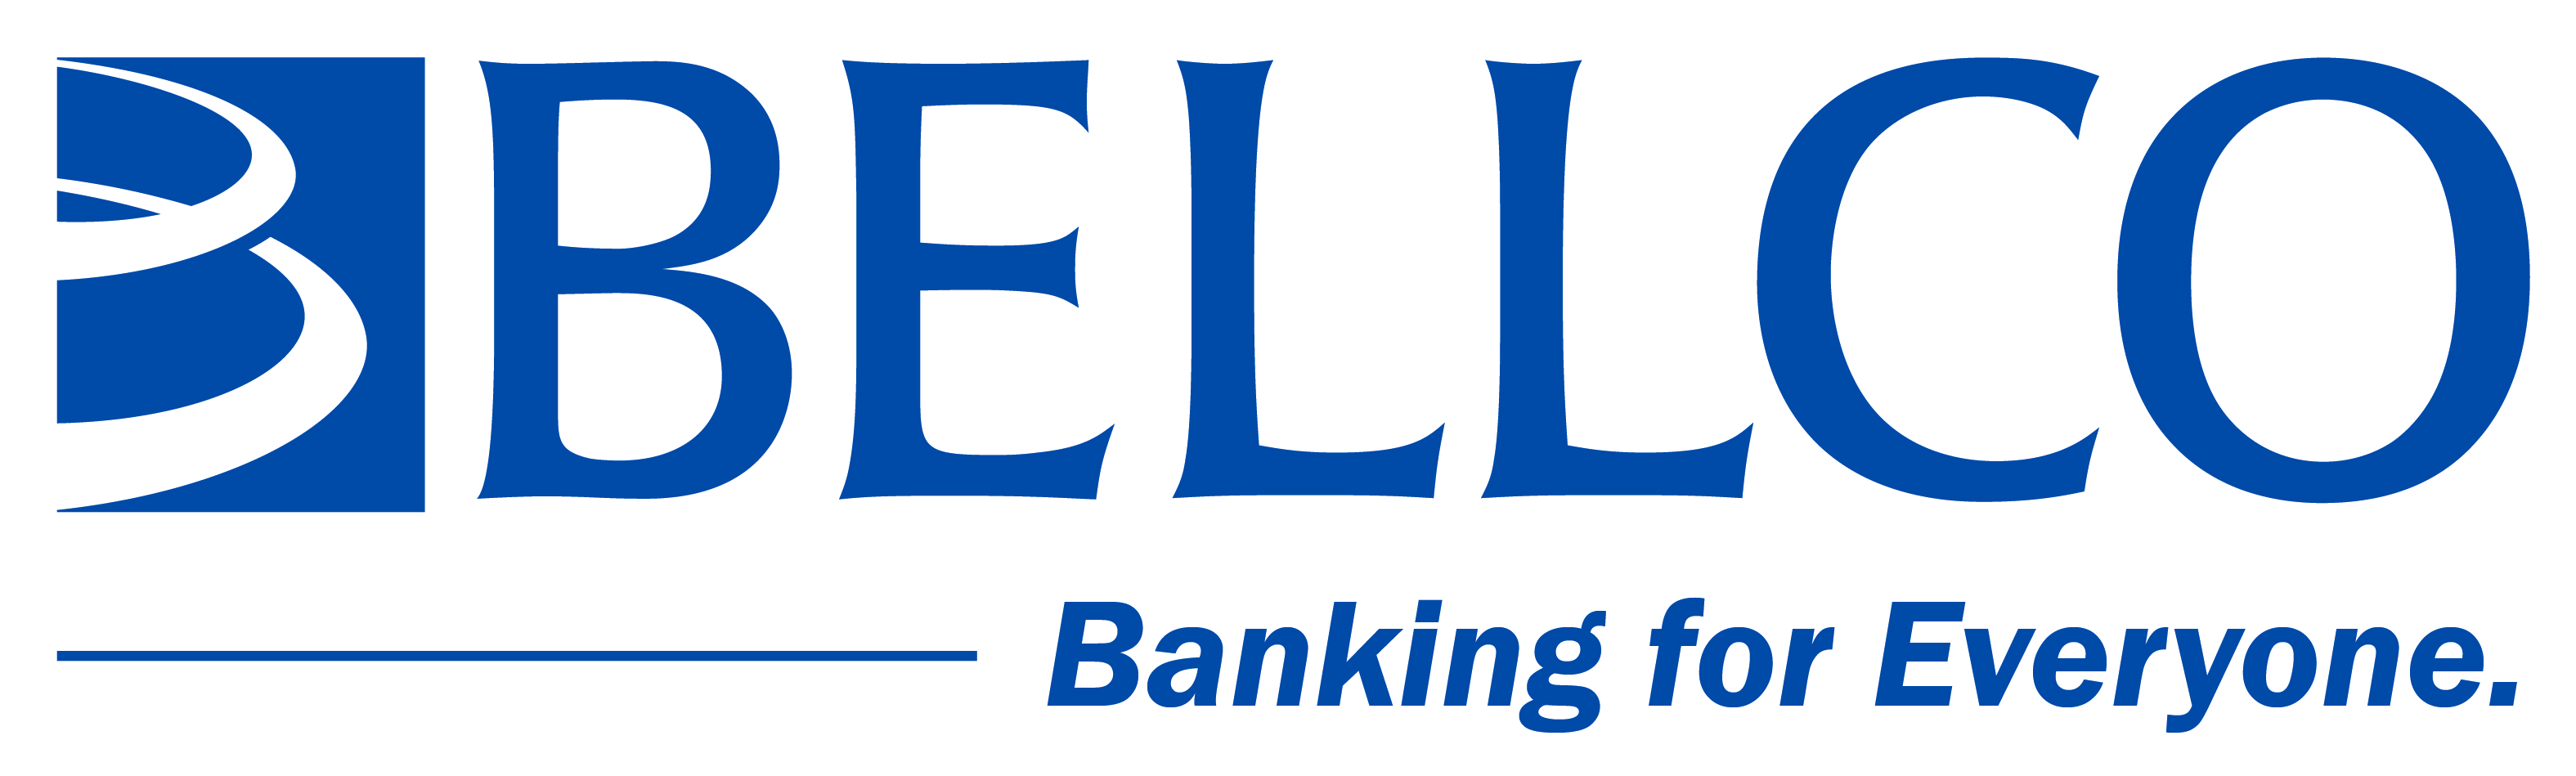 bellco credit union | banking for everyone | denver, co